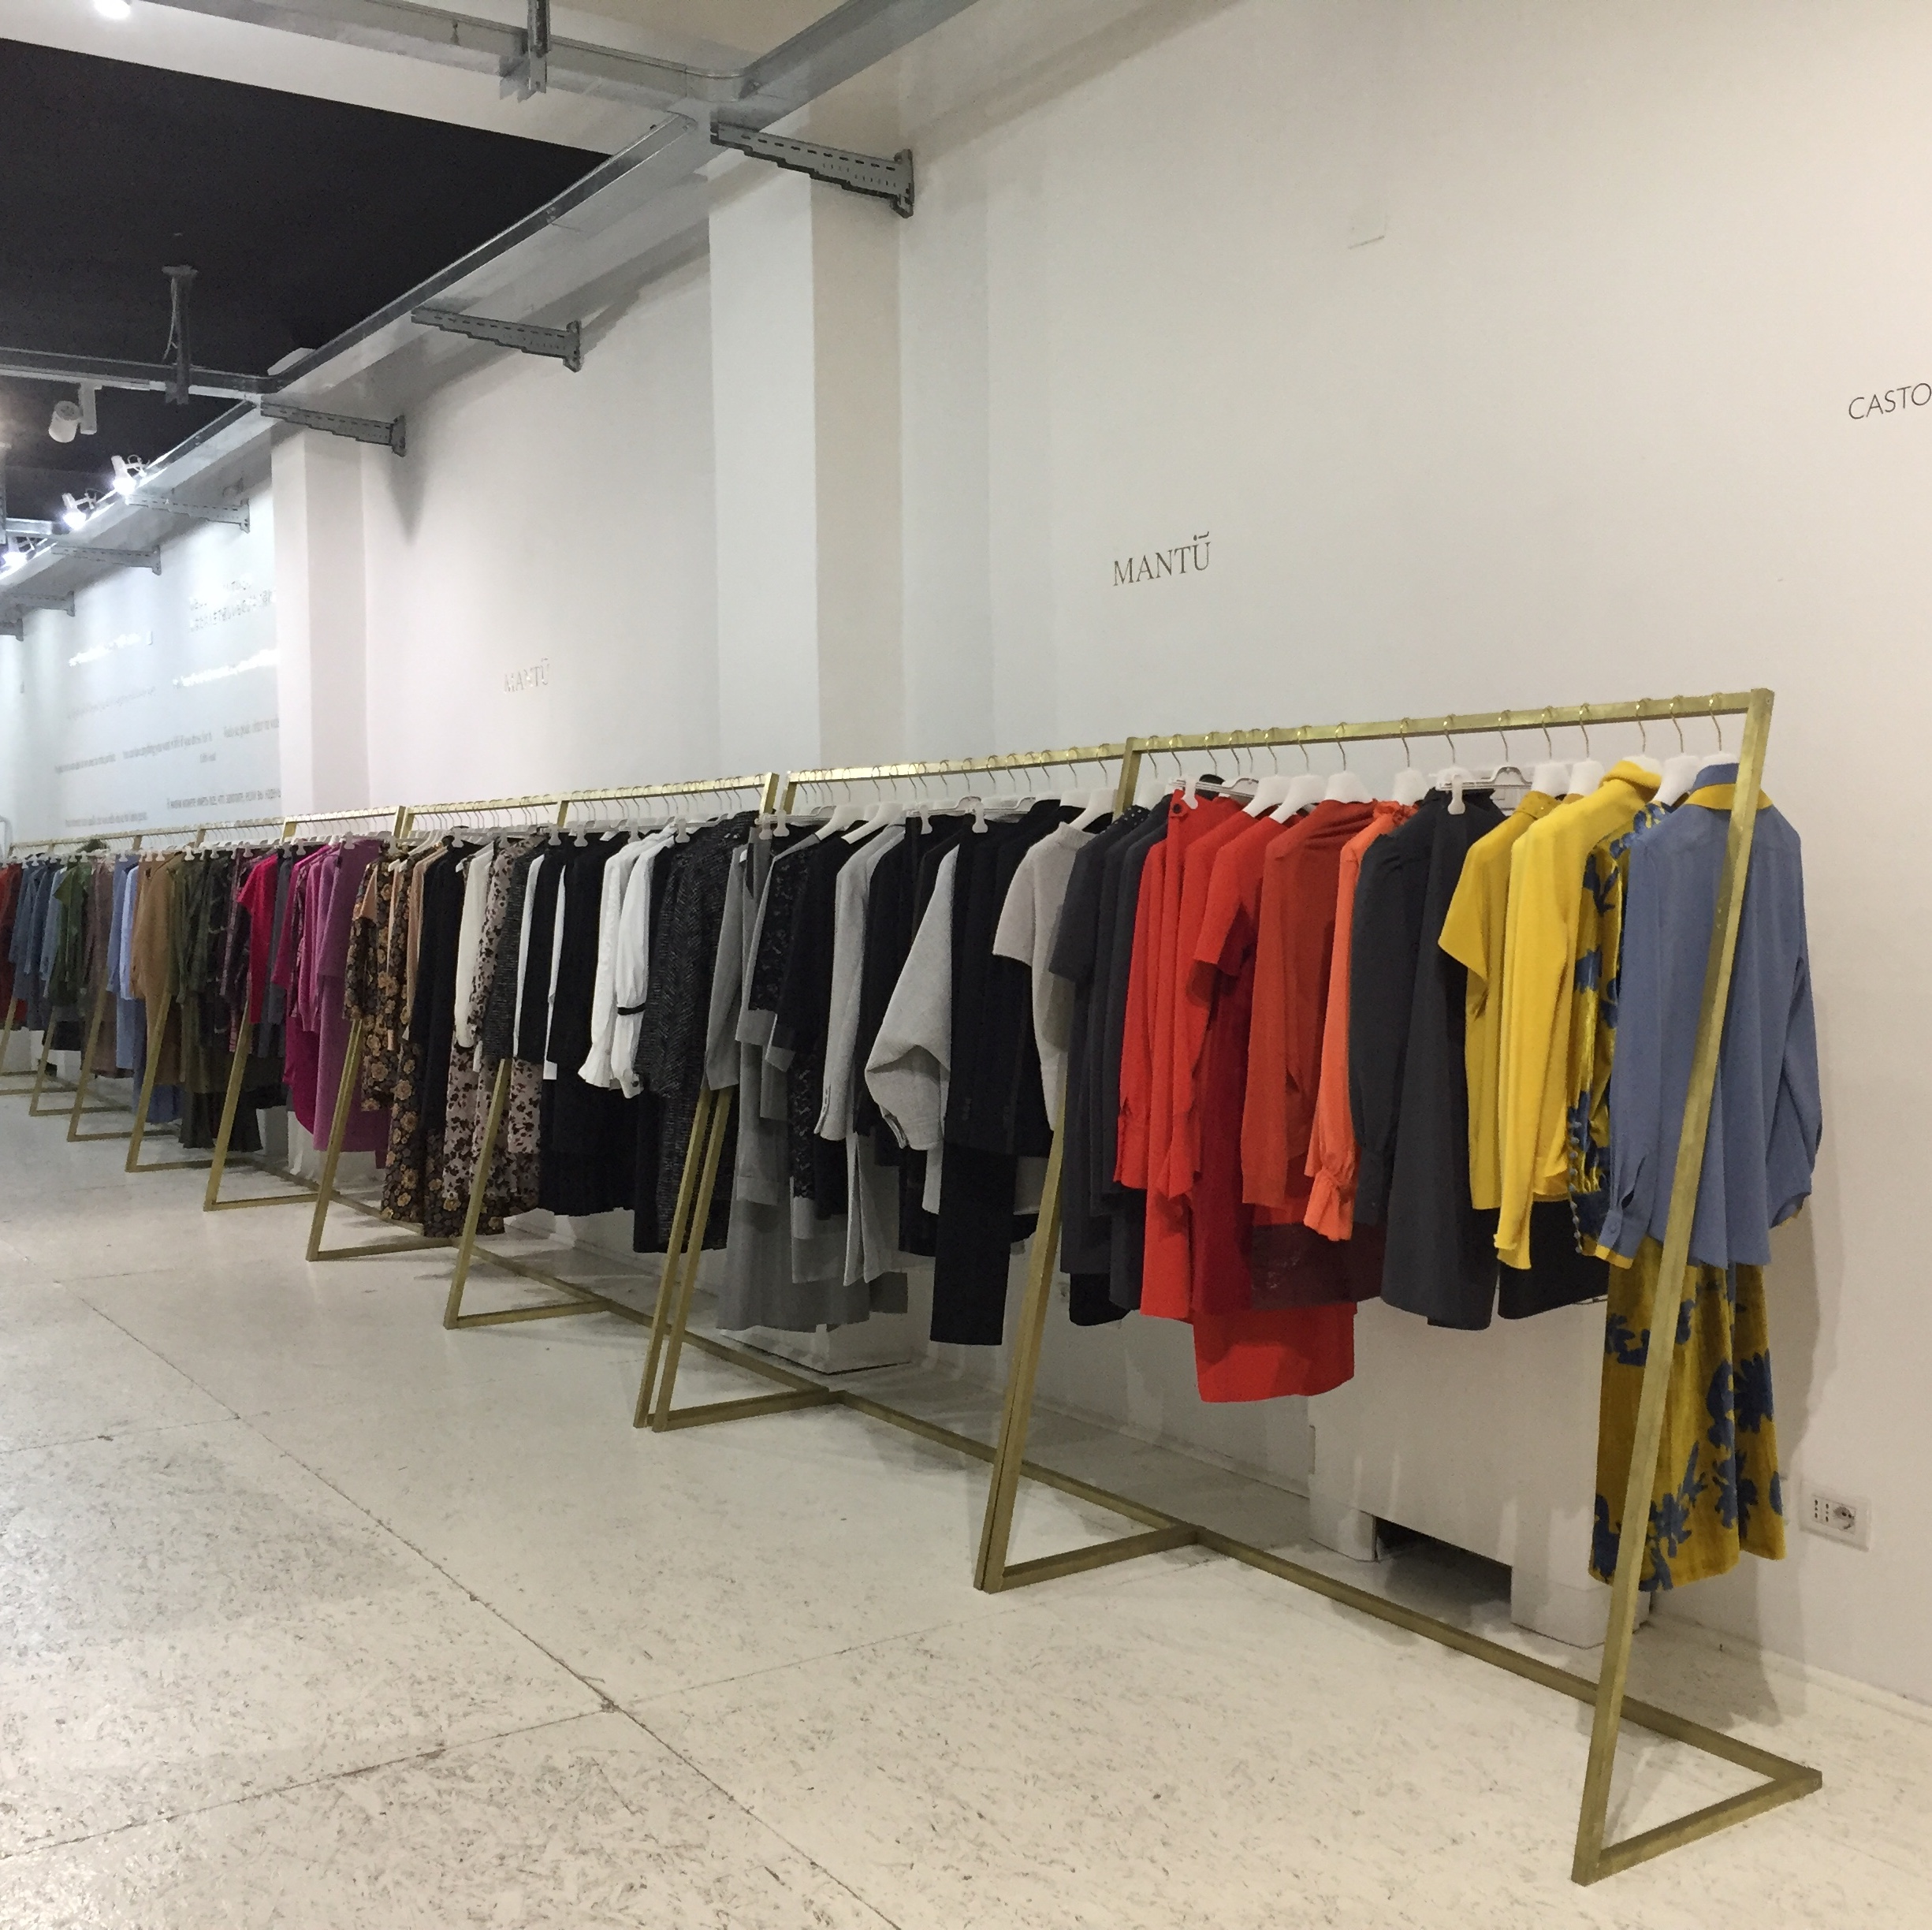 Production - Laboratorio, Open space, Showroom di 210mq in via Savona 53 | location allestita 6